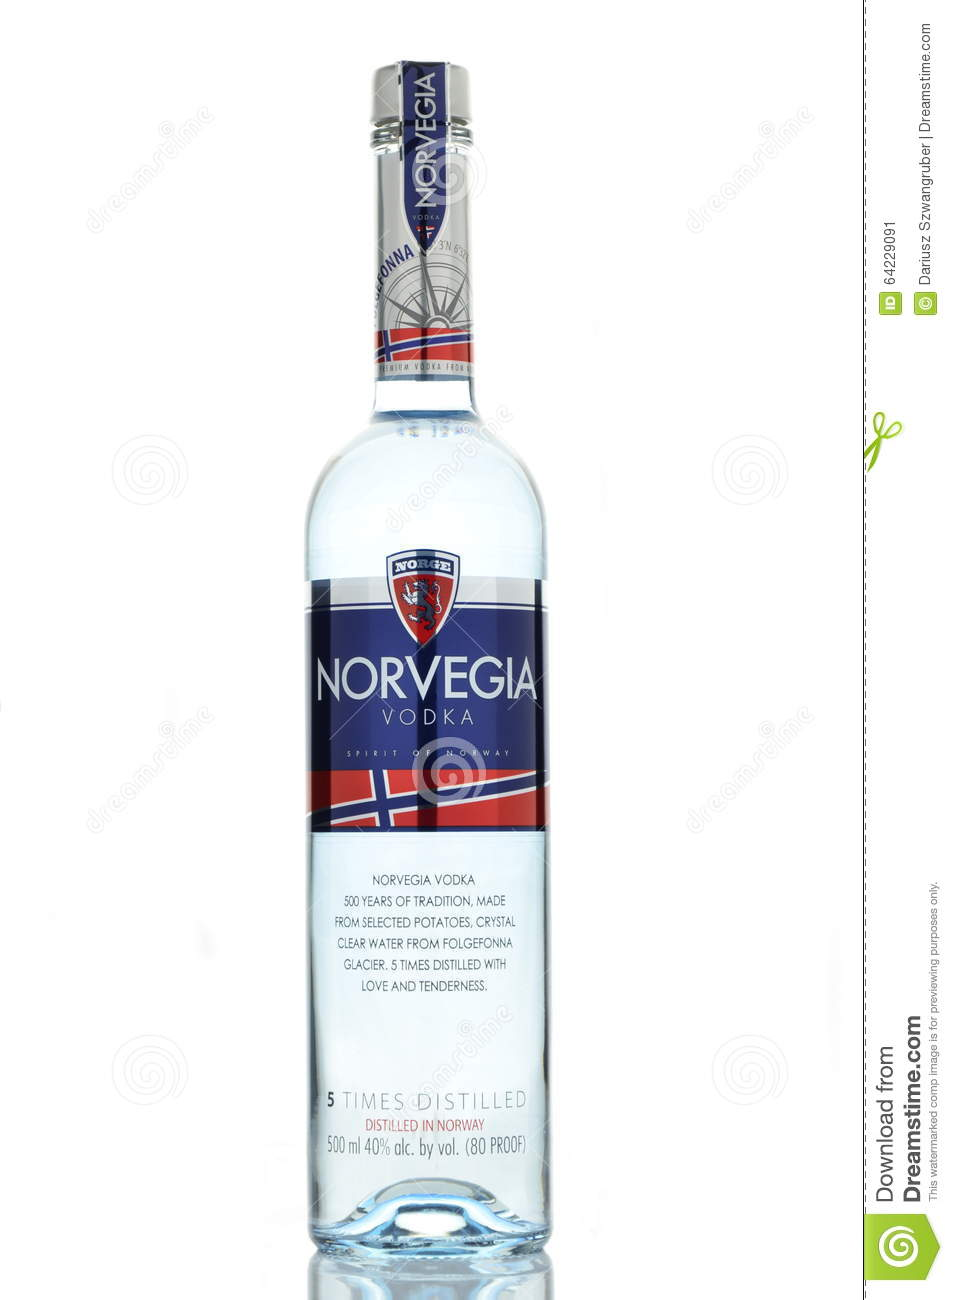 How to clean vodka